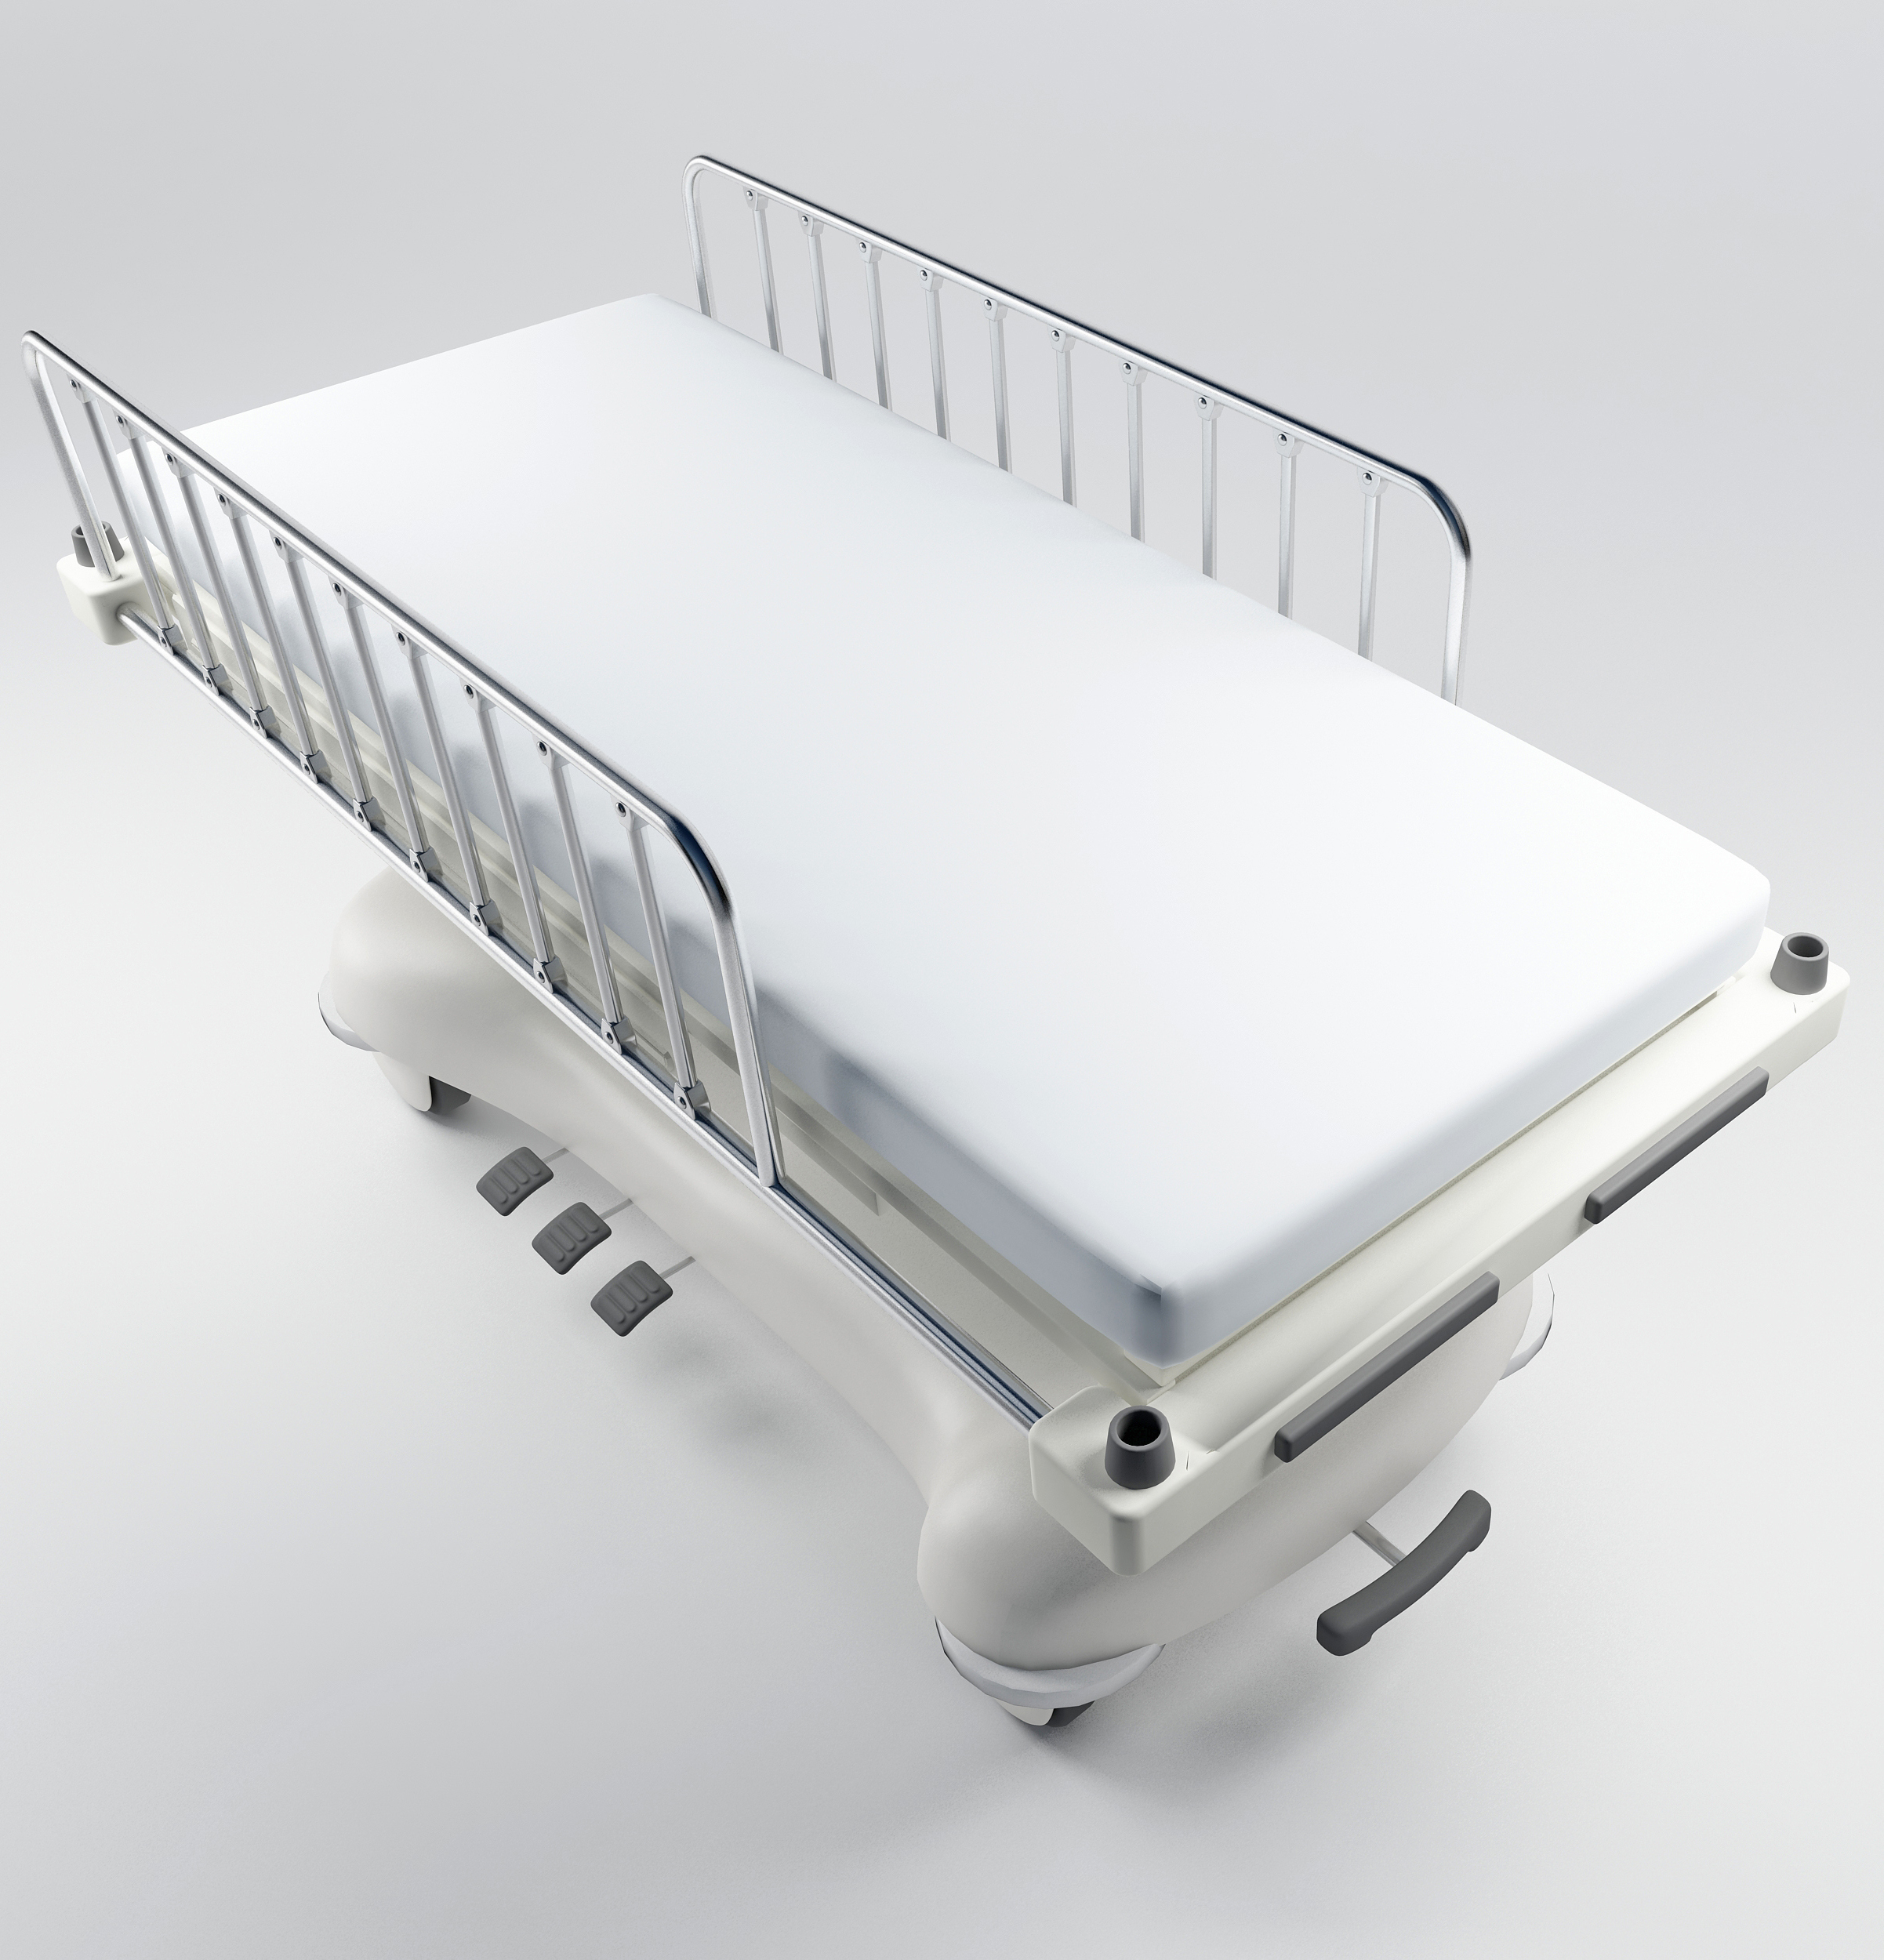 Mattress Protection -              Normal   0         21         false   false   false      DA   X-NONE   X-NONE                                                                                                                                                                                                                                                                                                                                                                                                                                                                                                                                                                                                                                                                                                                                                                                                                                                                                                                                                                                                                                                                                                                                                                                                                                                                             /* Style Definitions */  table.MsoNormalTable 	{mso-style-name: